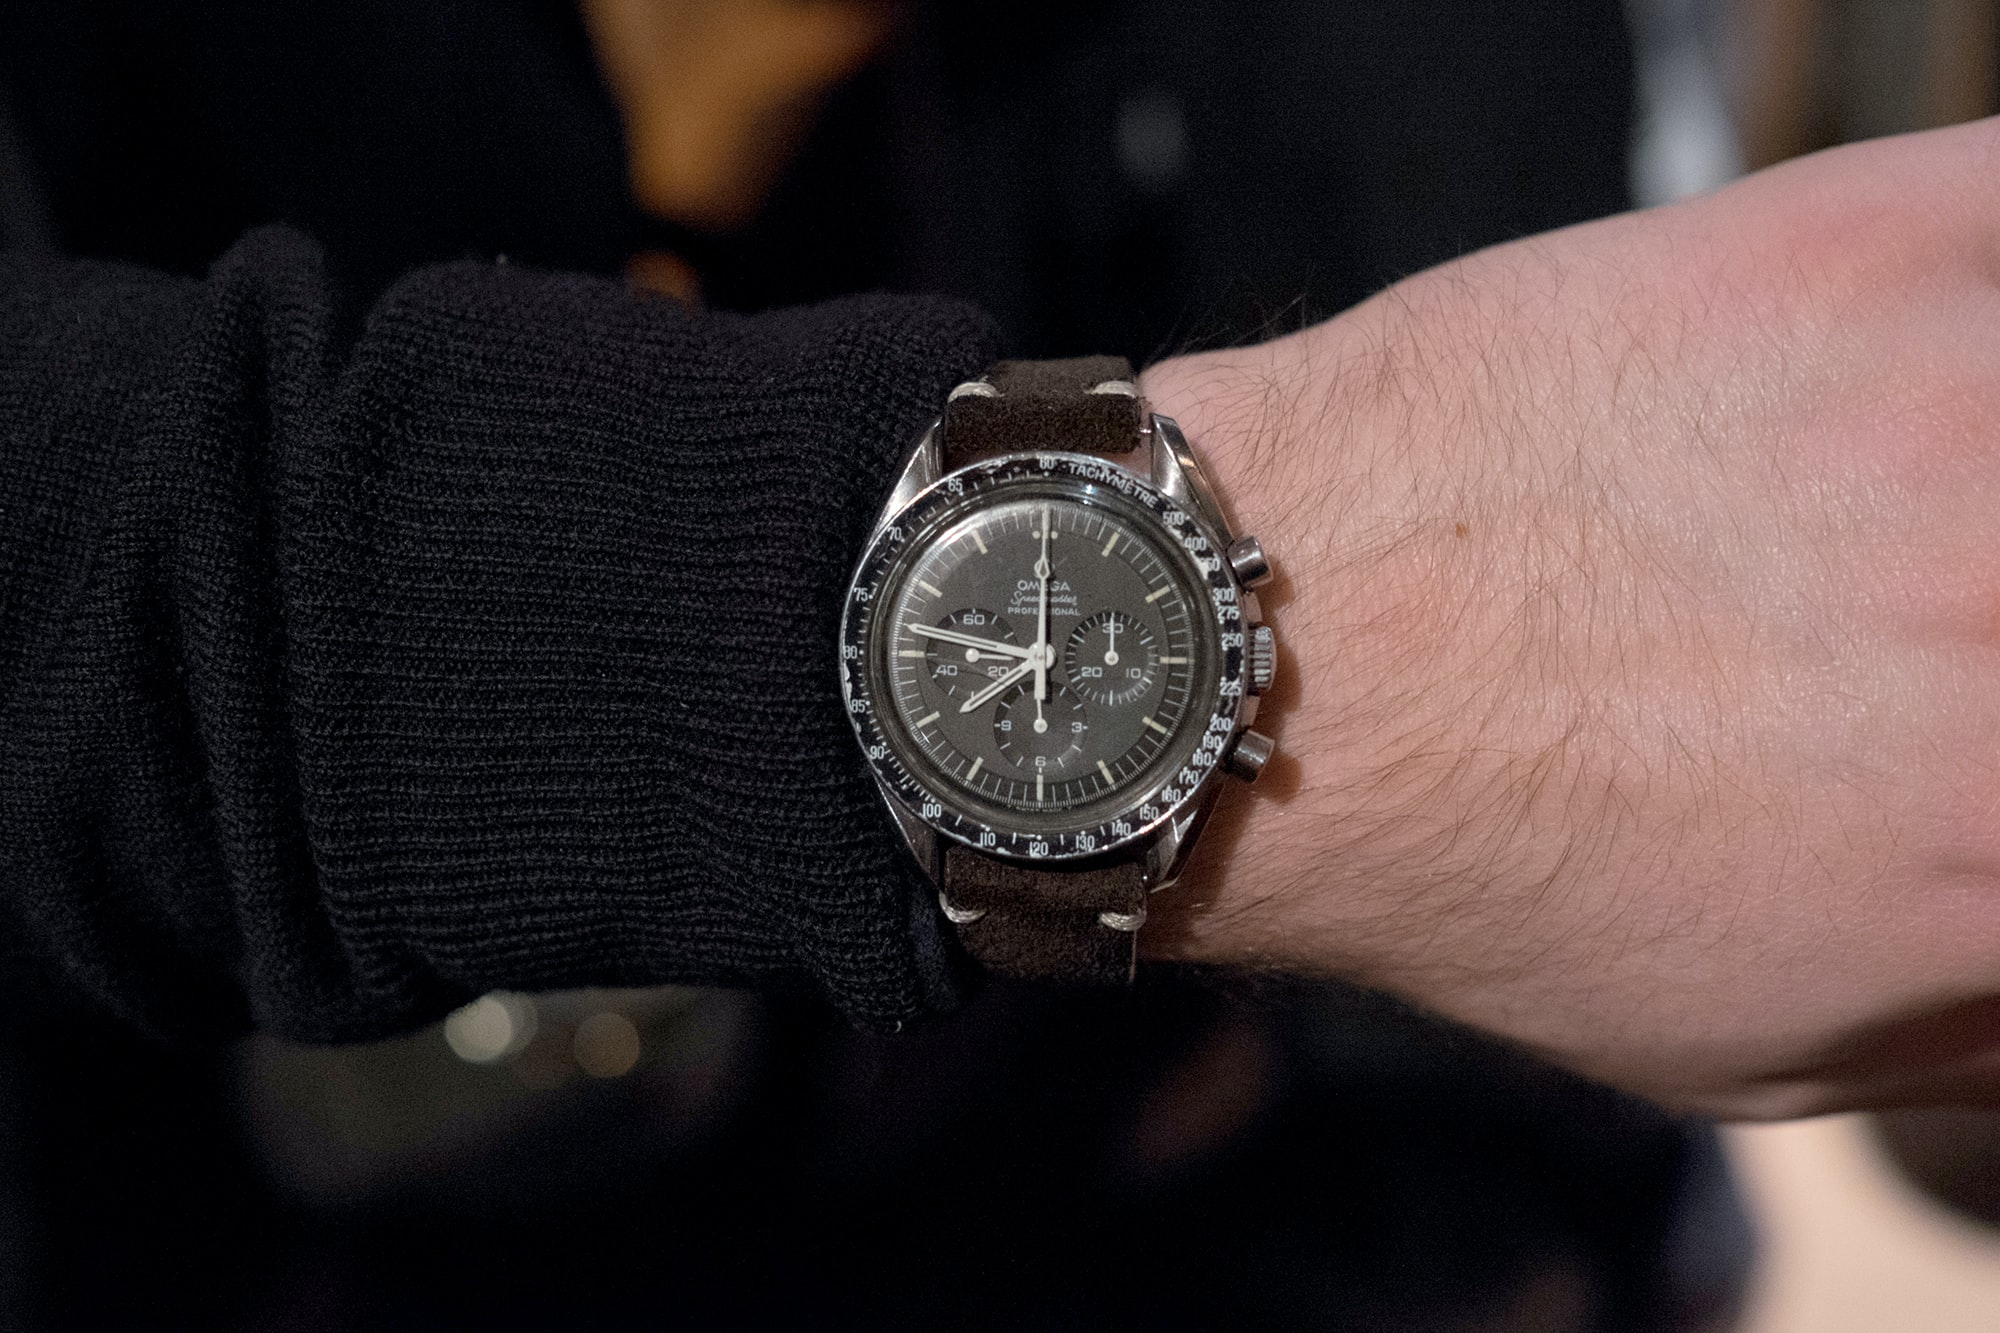 Photo Report: Watch Spotting At The HODINKEE Meet-Up In London (Plus Our Holiday 2016 Pop-Up At Harrods) Photo Report: Watch Spotting At The HODINKEE Meet-Up In London (Plus Our Holiday 2016 Pop-Up At Harrods) Hodinkee event 29 nov 2016 66